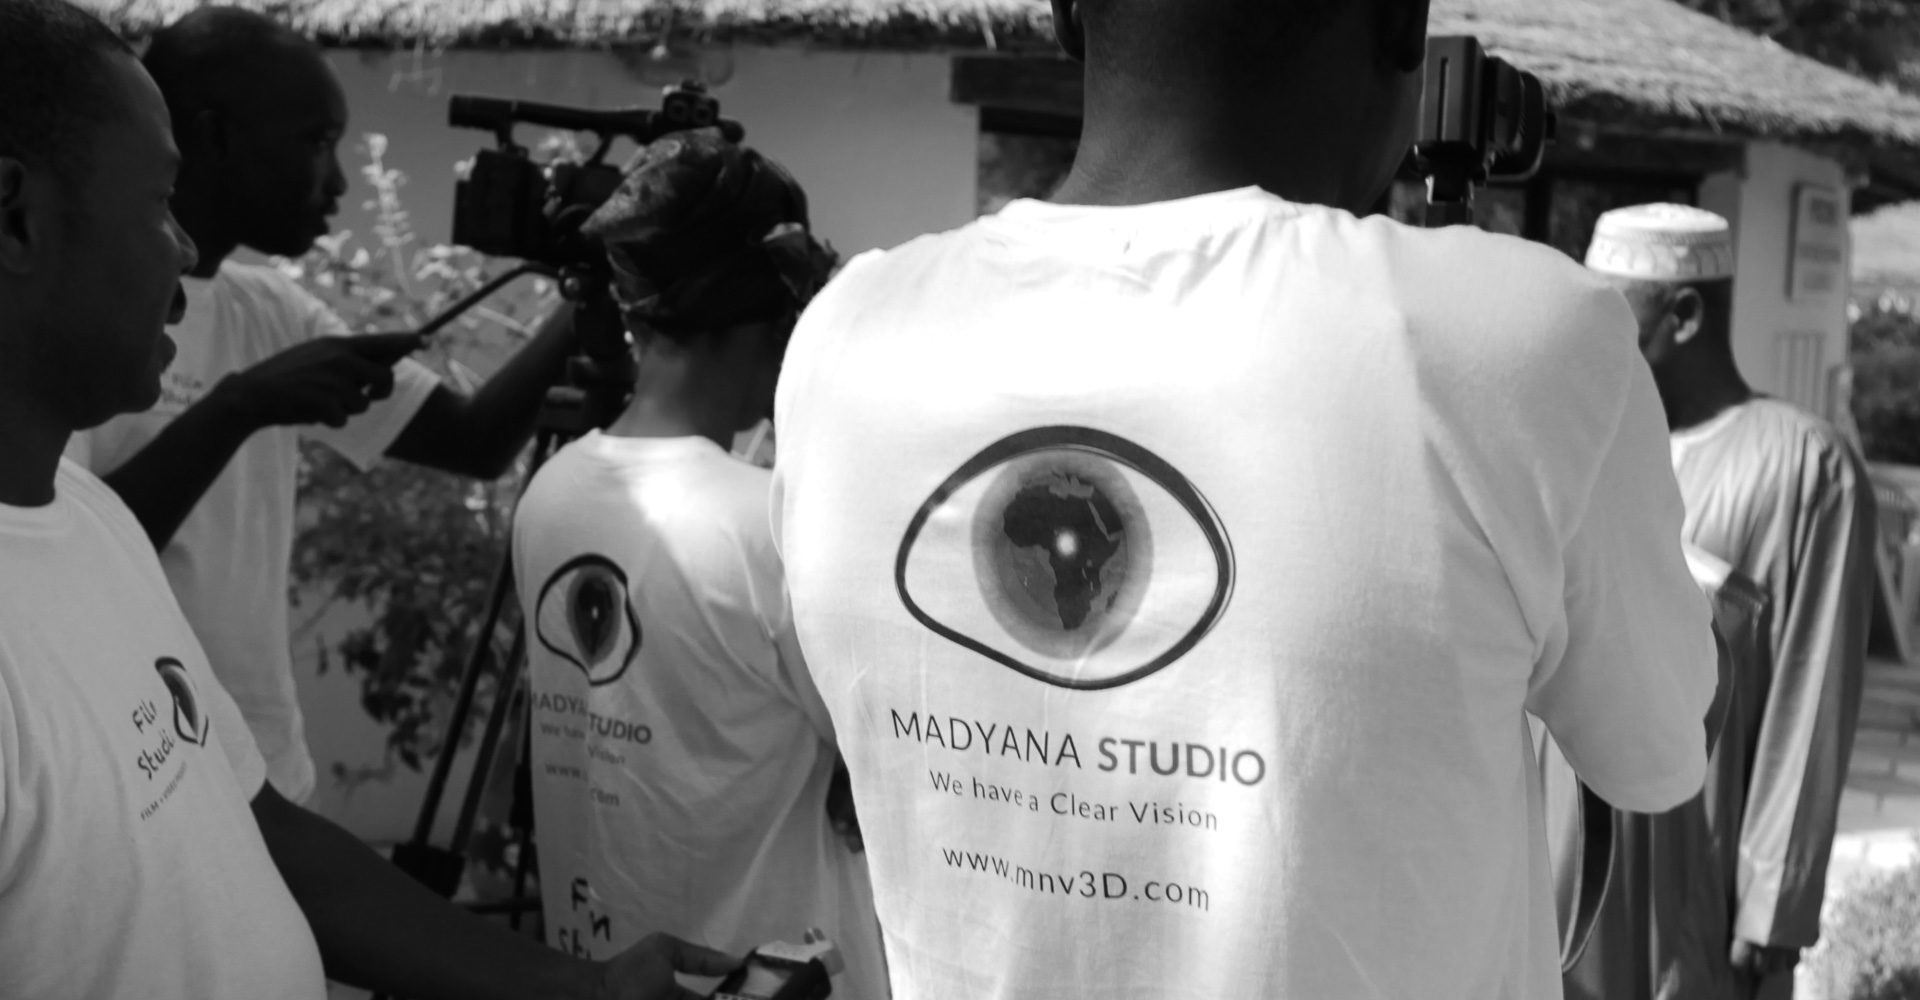 Madyana Studio Video Production